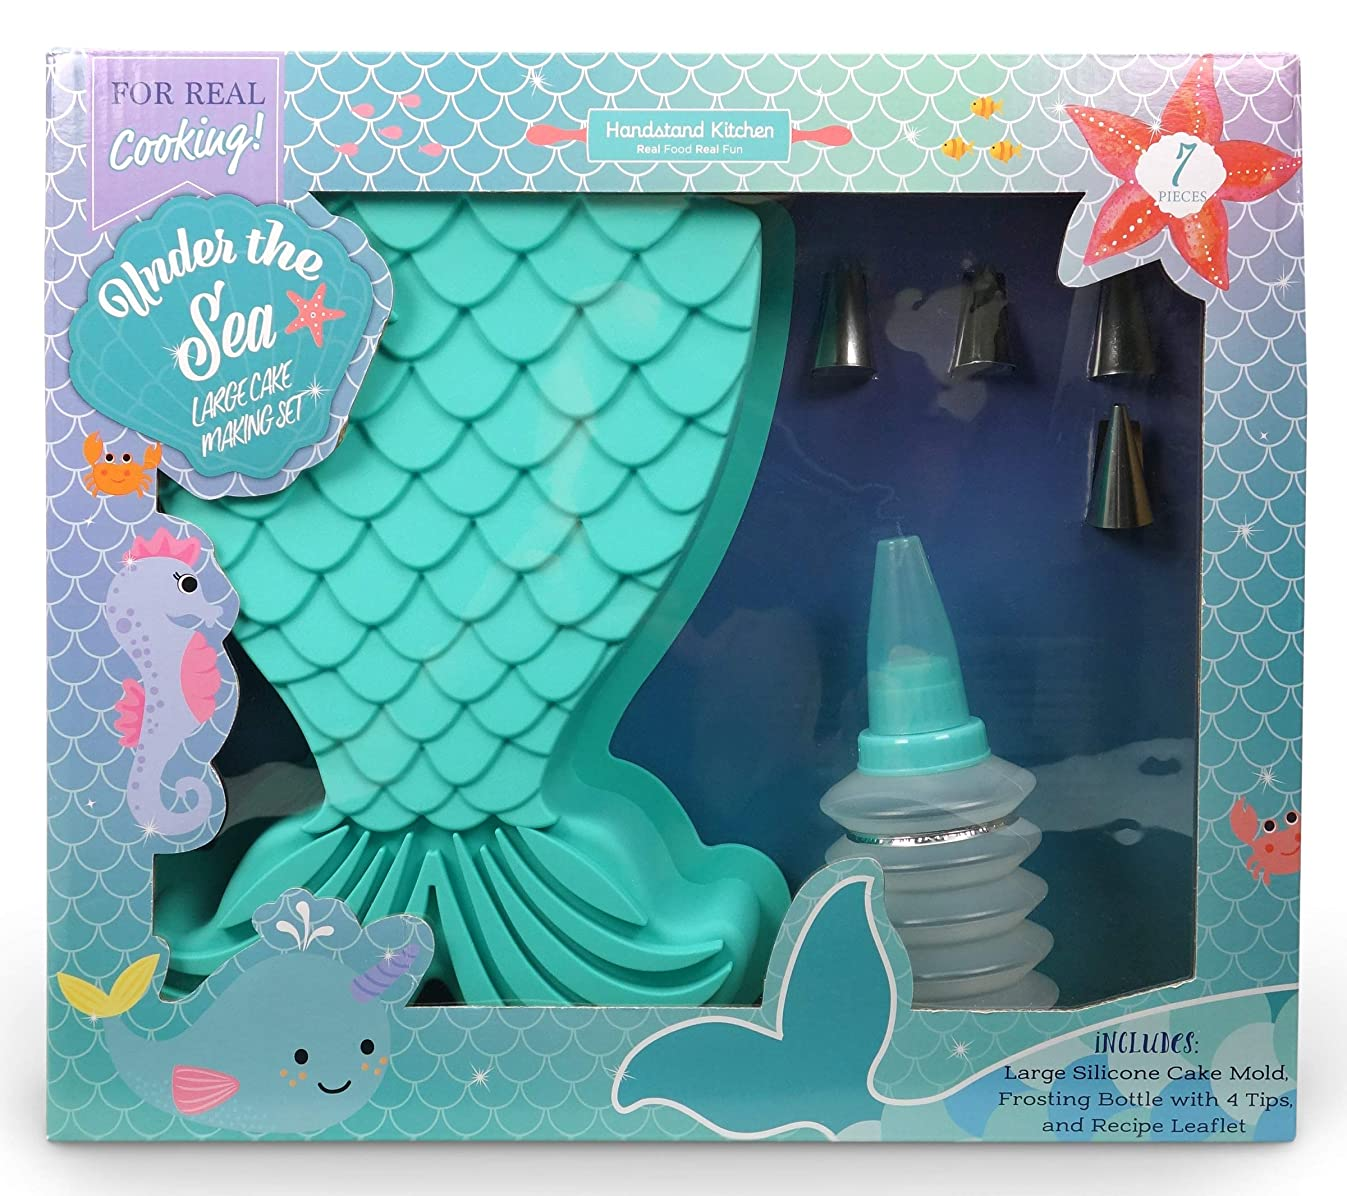 Handstand Kitchen Under the Sea 7-piece Real Mermaid Tail Shaped Cake Baking Set with Recipes for Kids